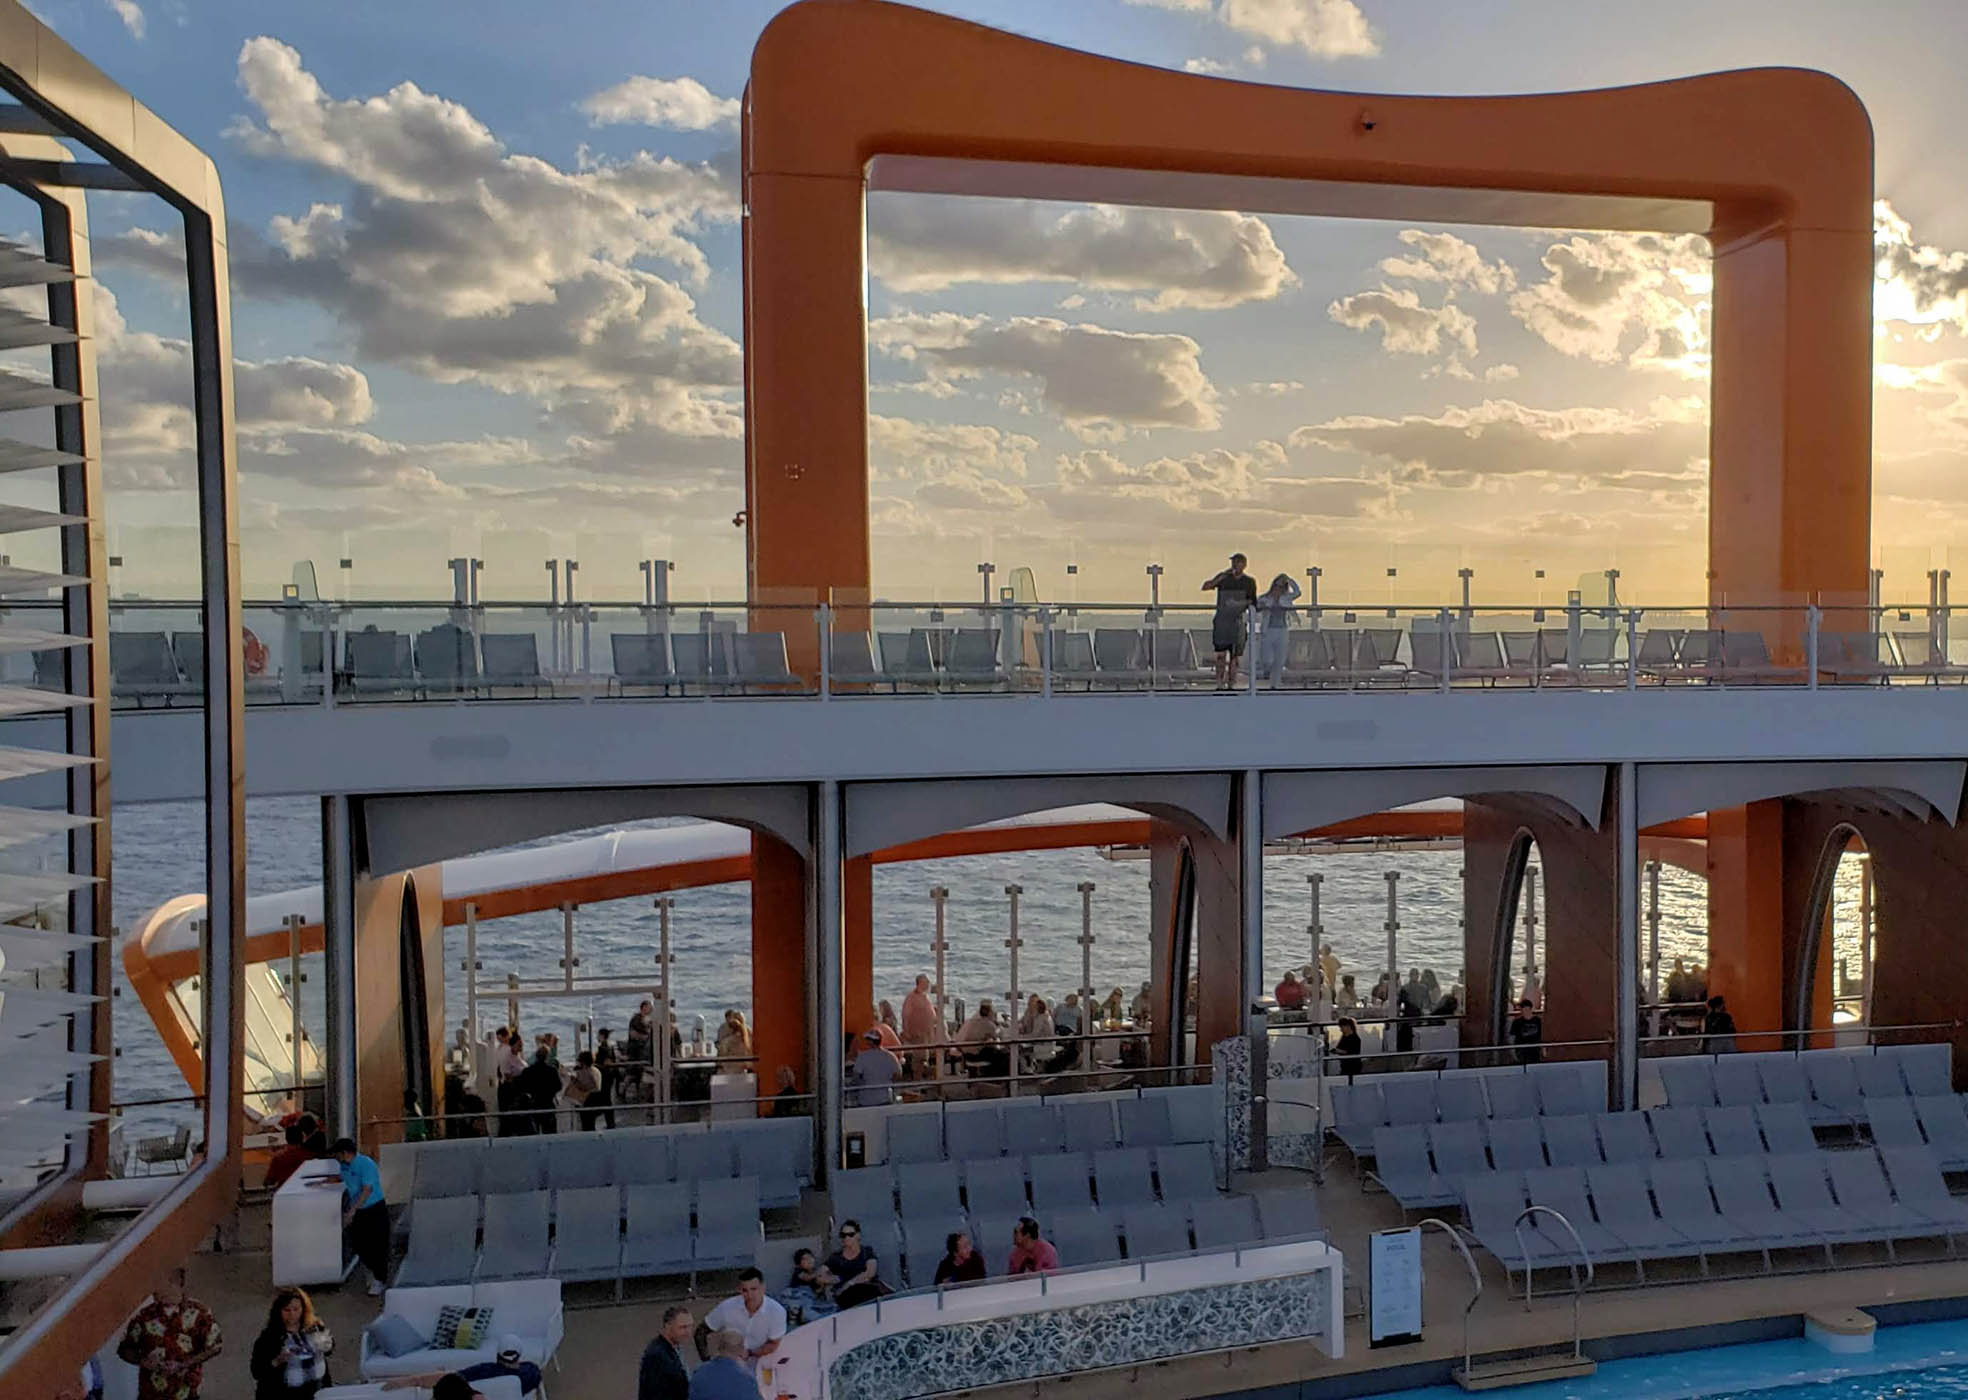 Celebrity Edge in Review, Part 1 - CruiseHabit Podcast Episode 9